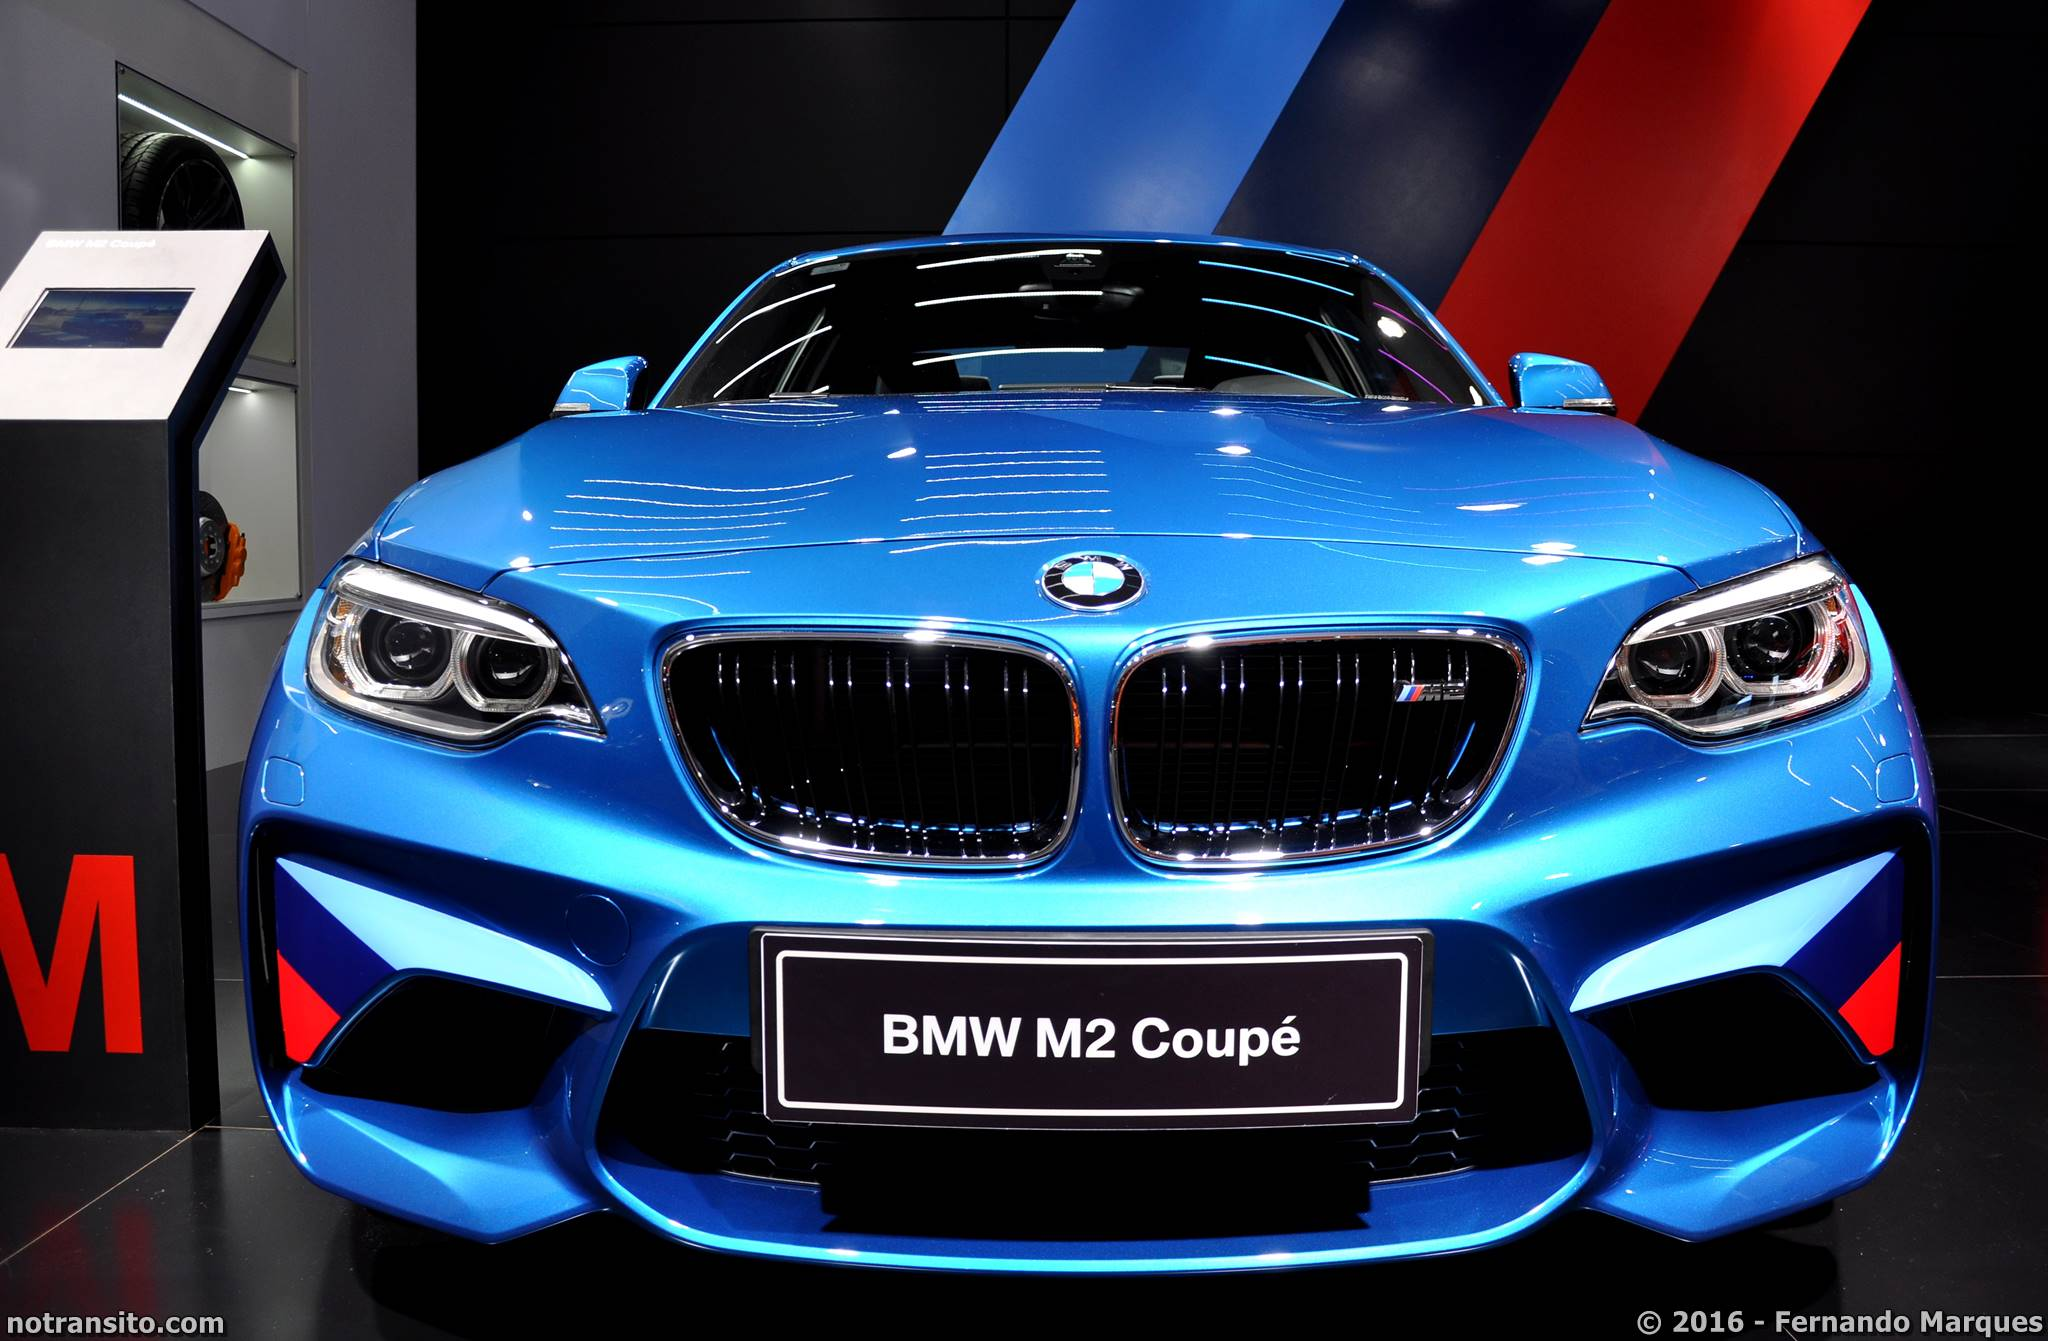 bmw-m2-coupe-006